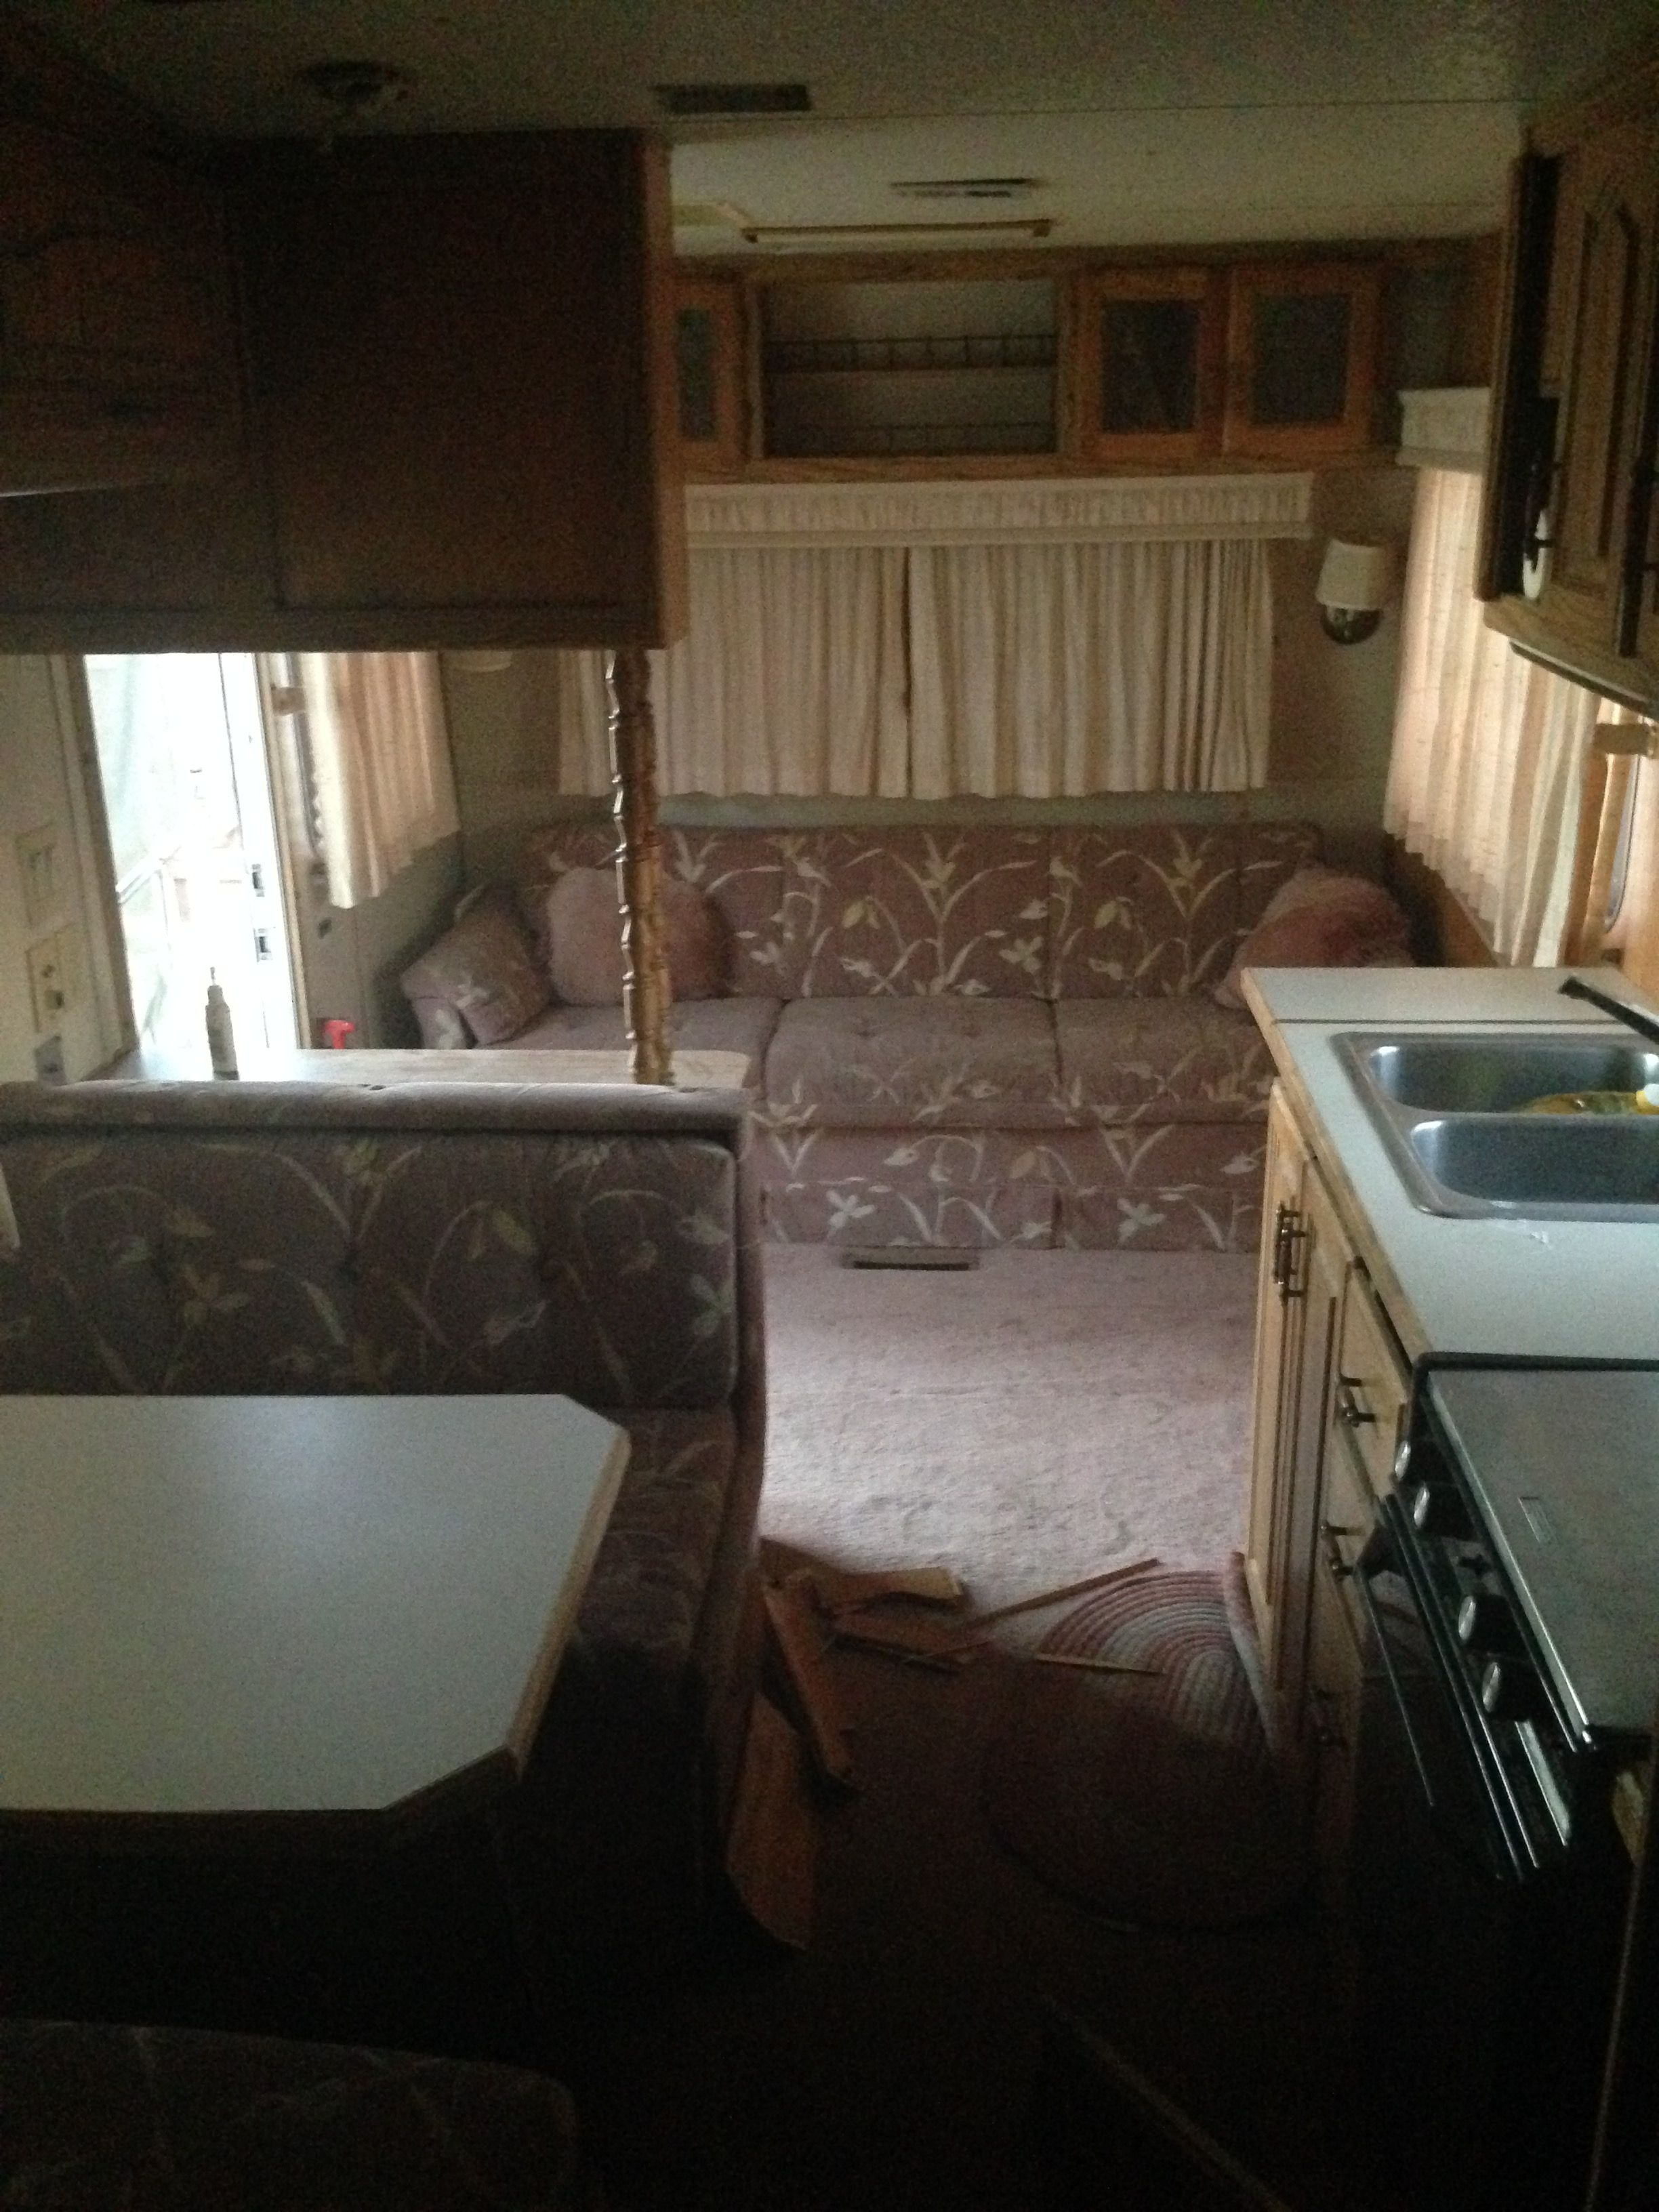 1987 Kountry Aire 5th Wheel RV Camper Interior | rv living ...